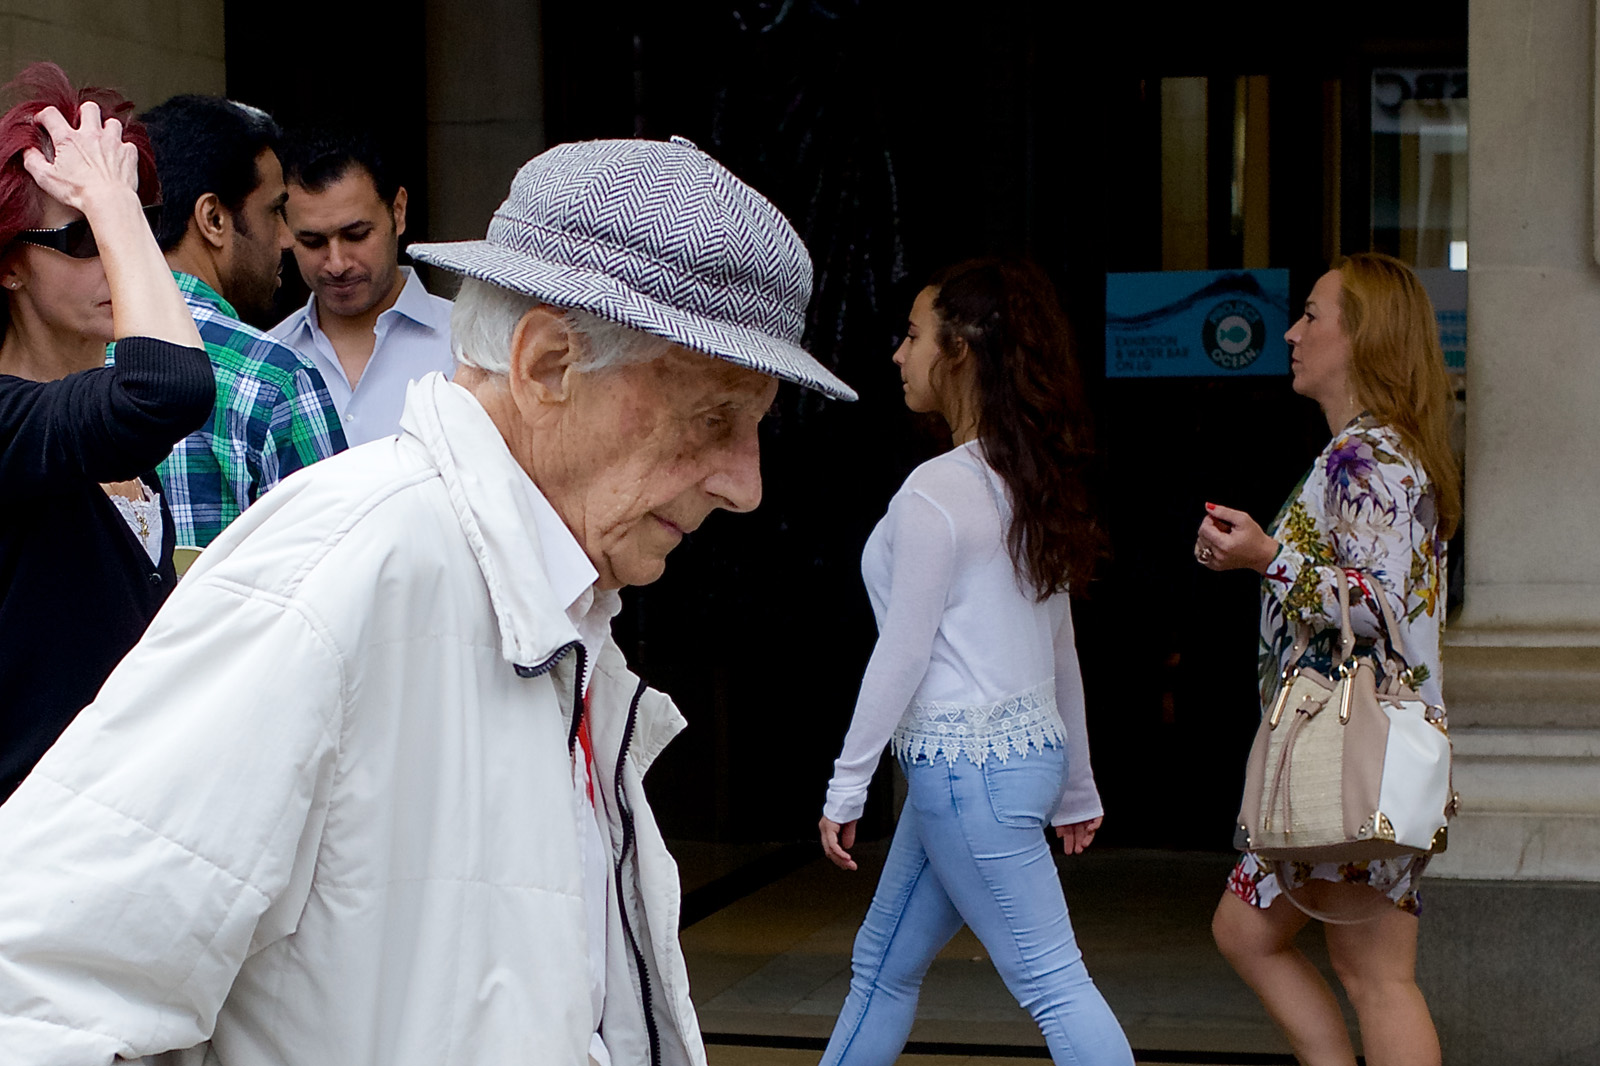 Is Anything Off-Limits for the Street Photographer?